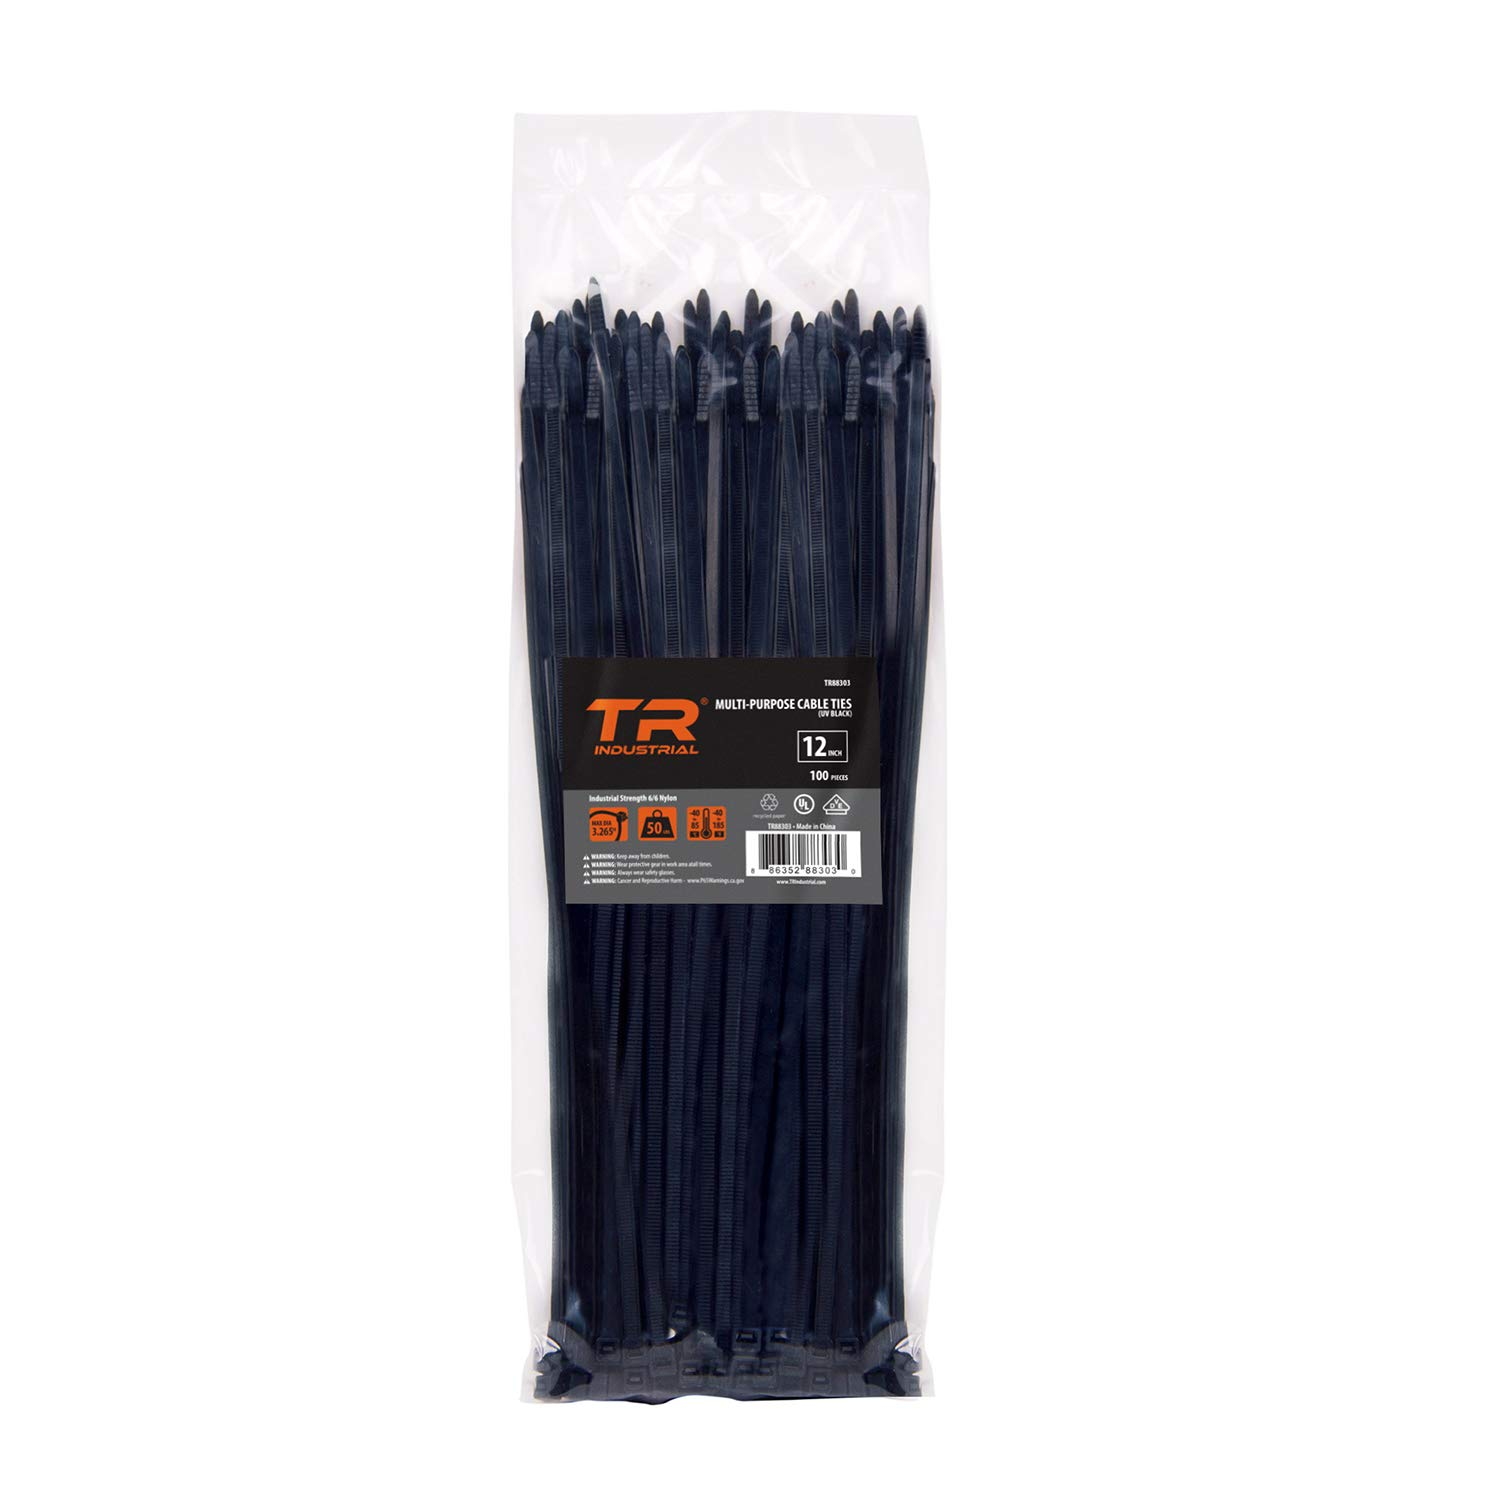 TR Industrial TR88302 Multi-Purpose Cable Tie (100 Piece), 8', Black 8